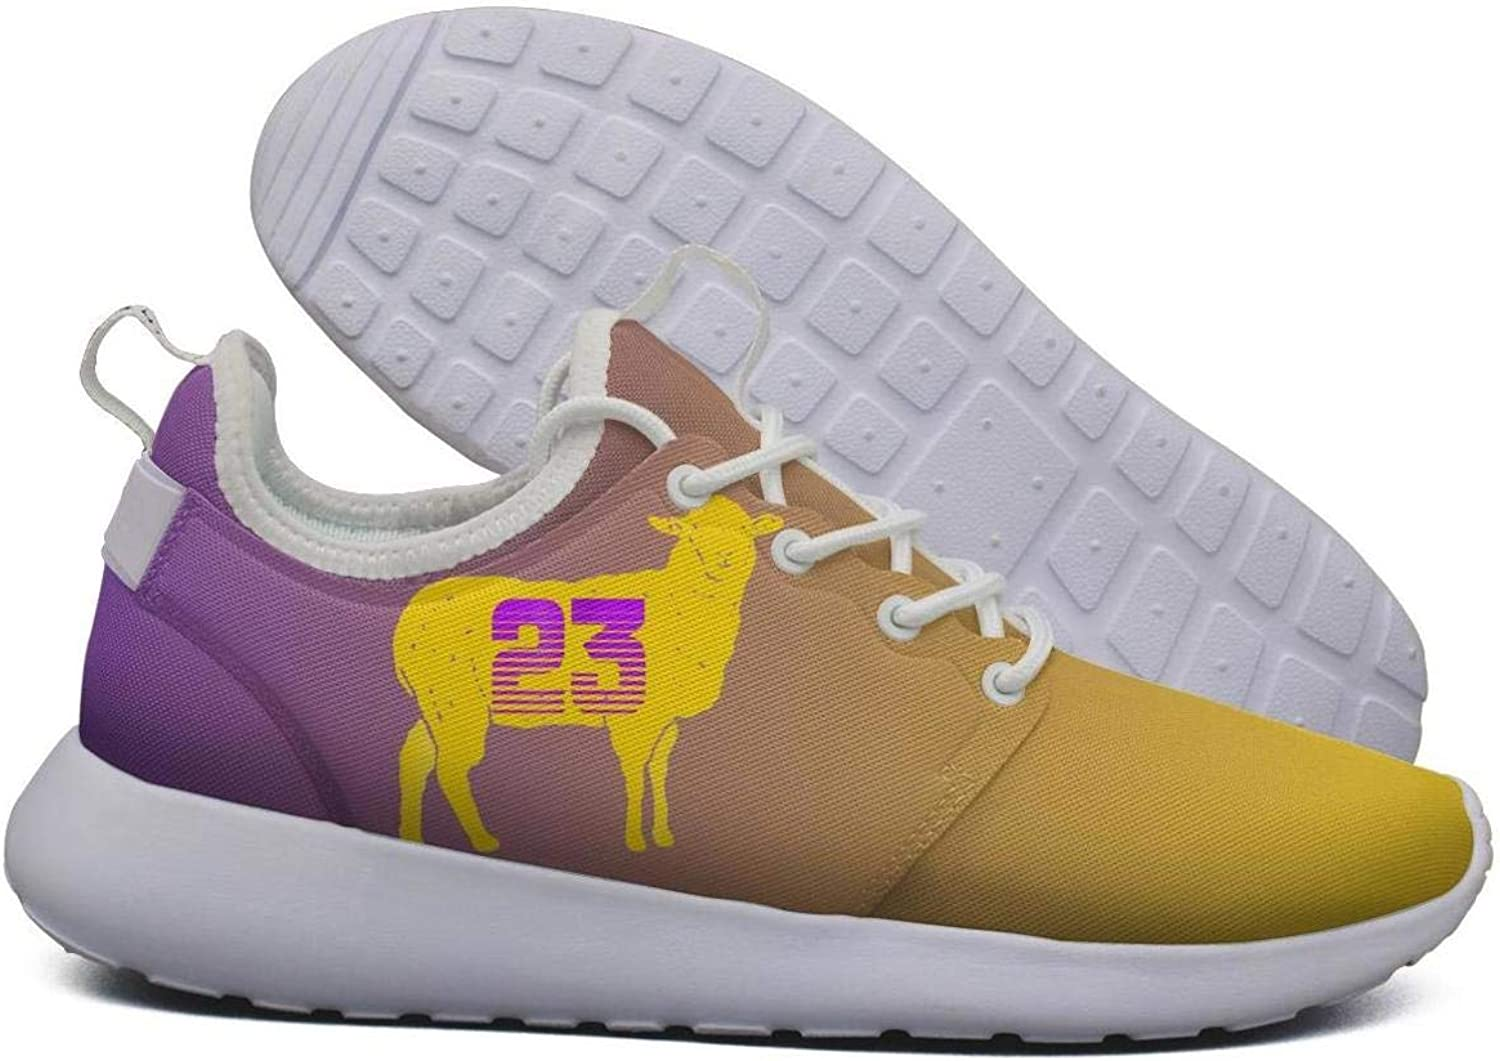 Womens Roshe Two Lightweight G.O.A.T 23 Yellow Goat Basketball Stylish Cross-Country Running mesh shoes